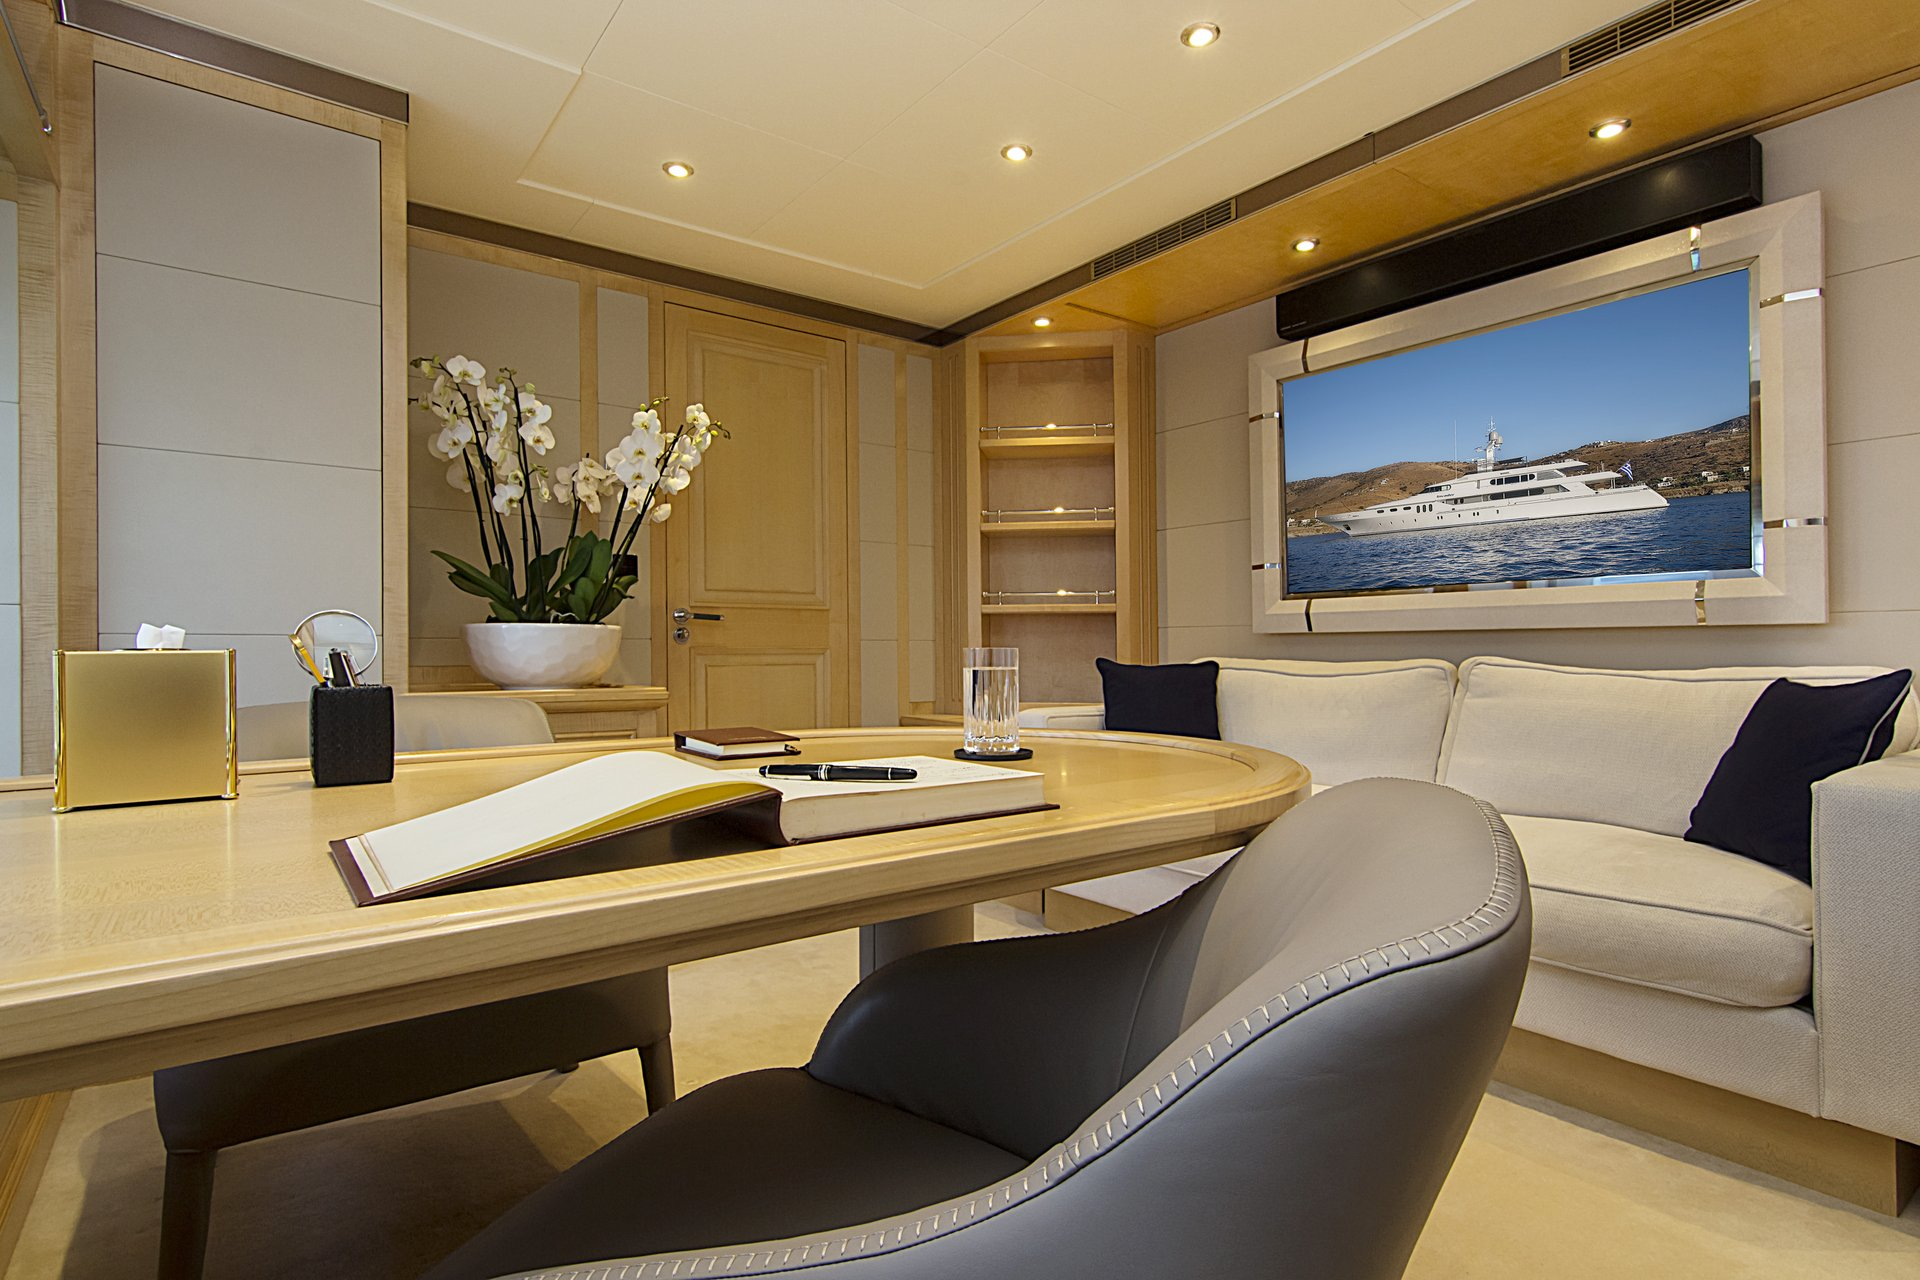 m/y invader yacht for charter desk